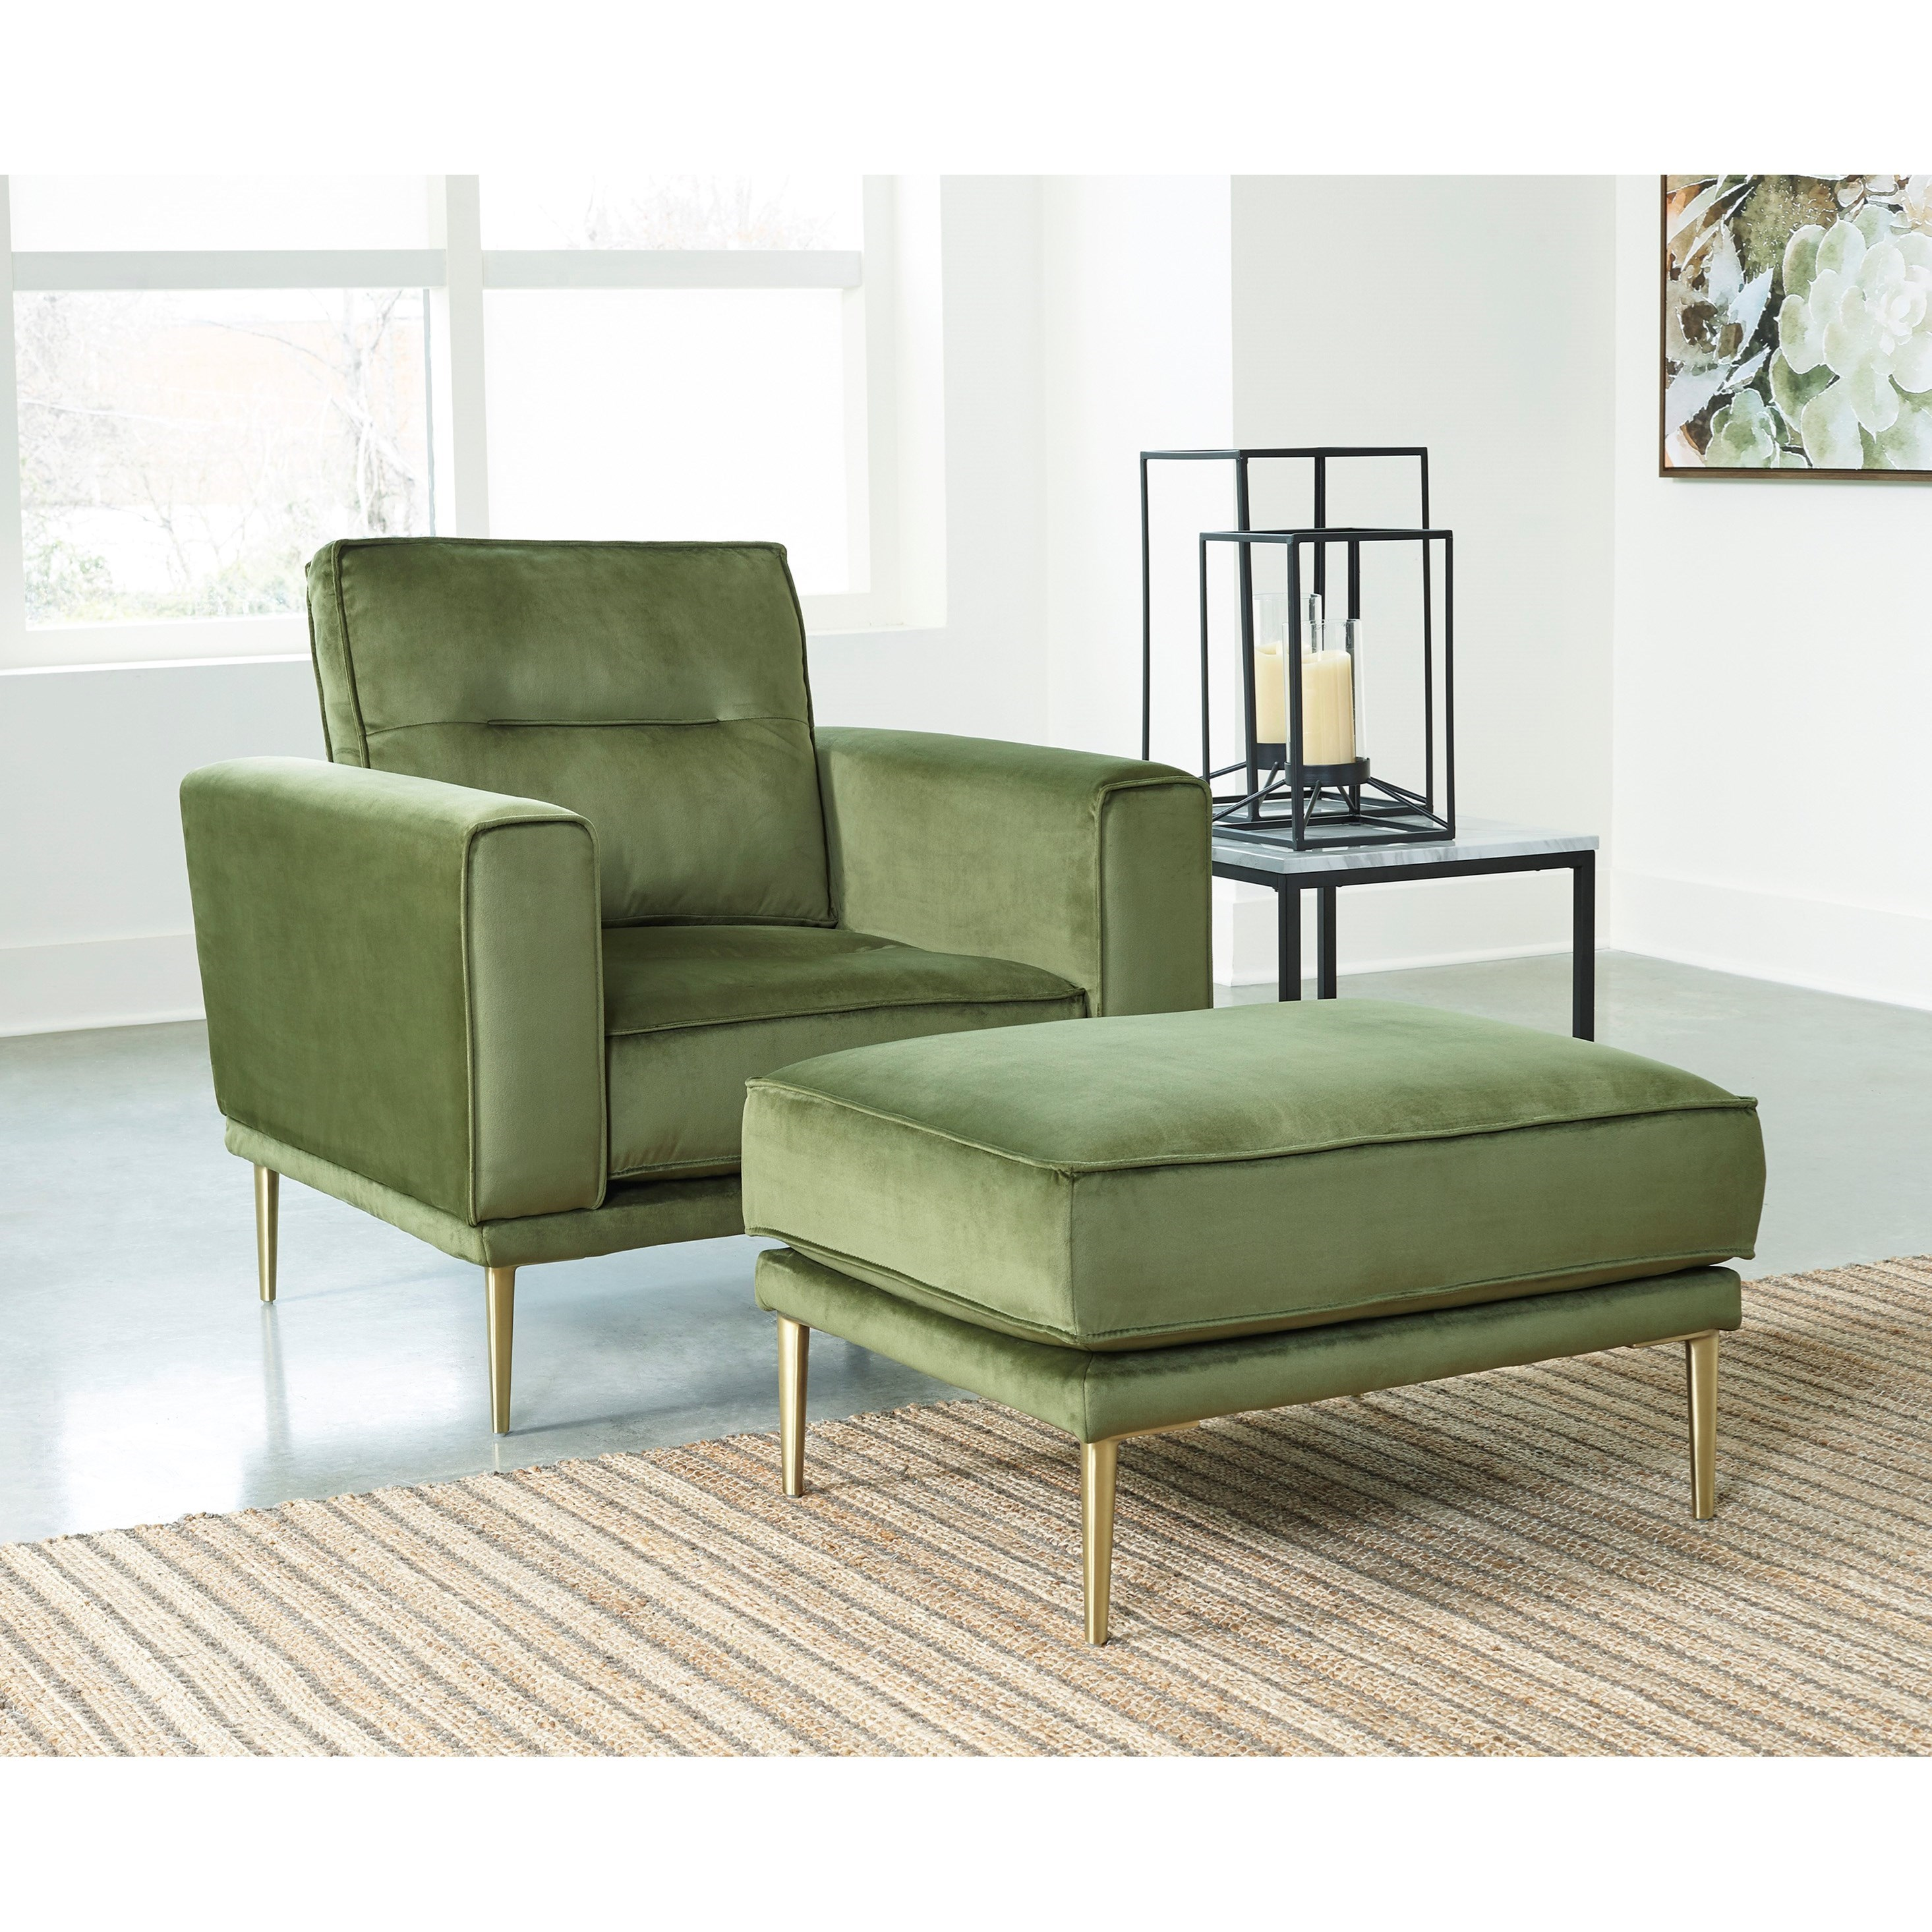 Macleary Chair and Ottoman Set by Ashley (Signature Design) at Johnny Janosik